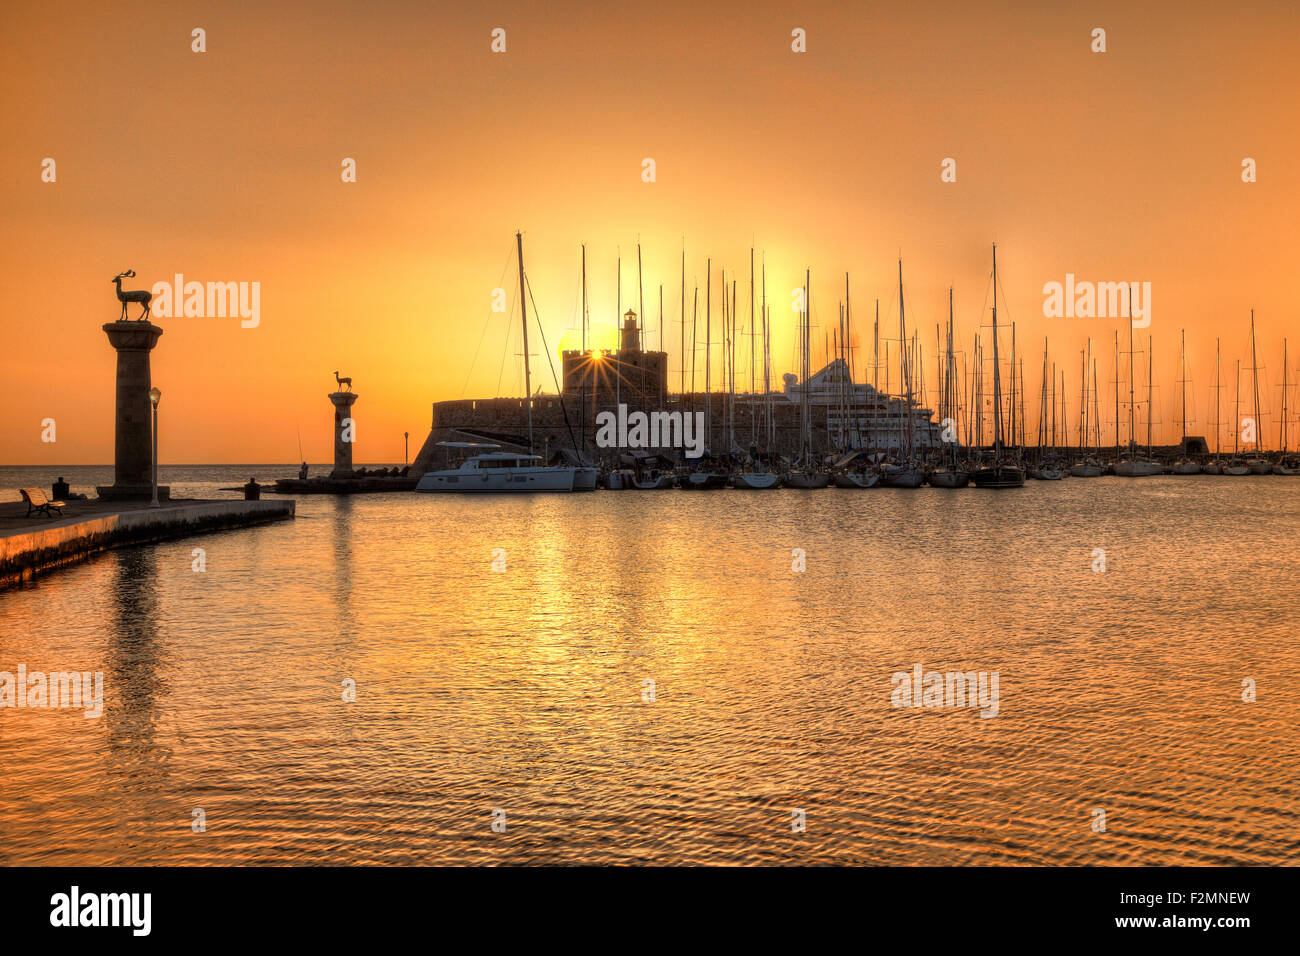 The sunrise at the entrance with the deers of the old port of Rhodes, Greece - Stock Image